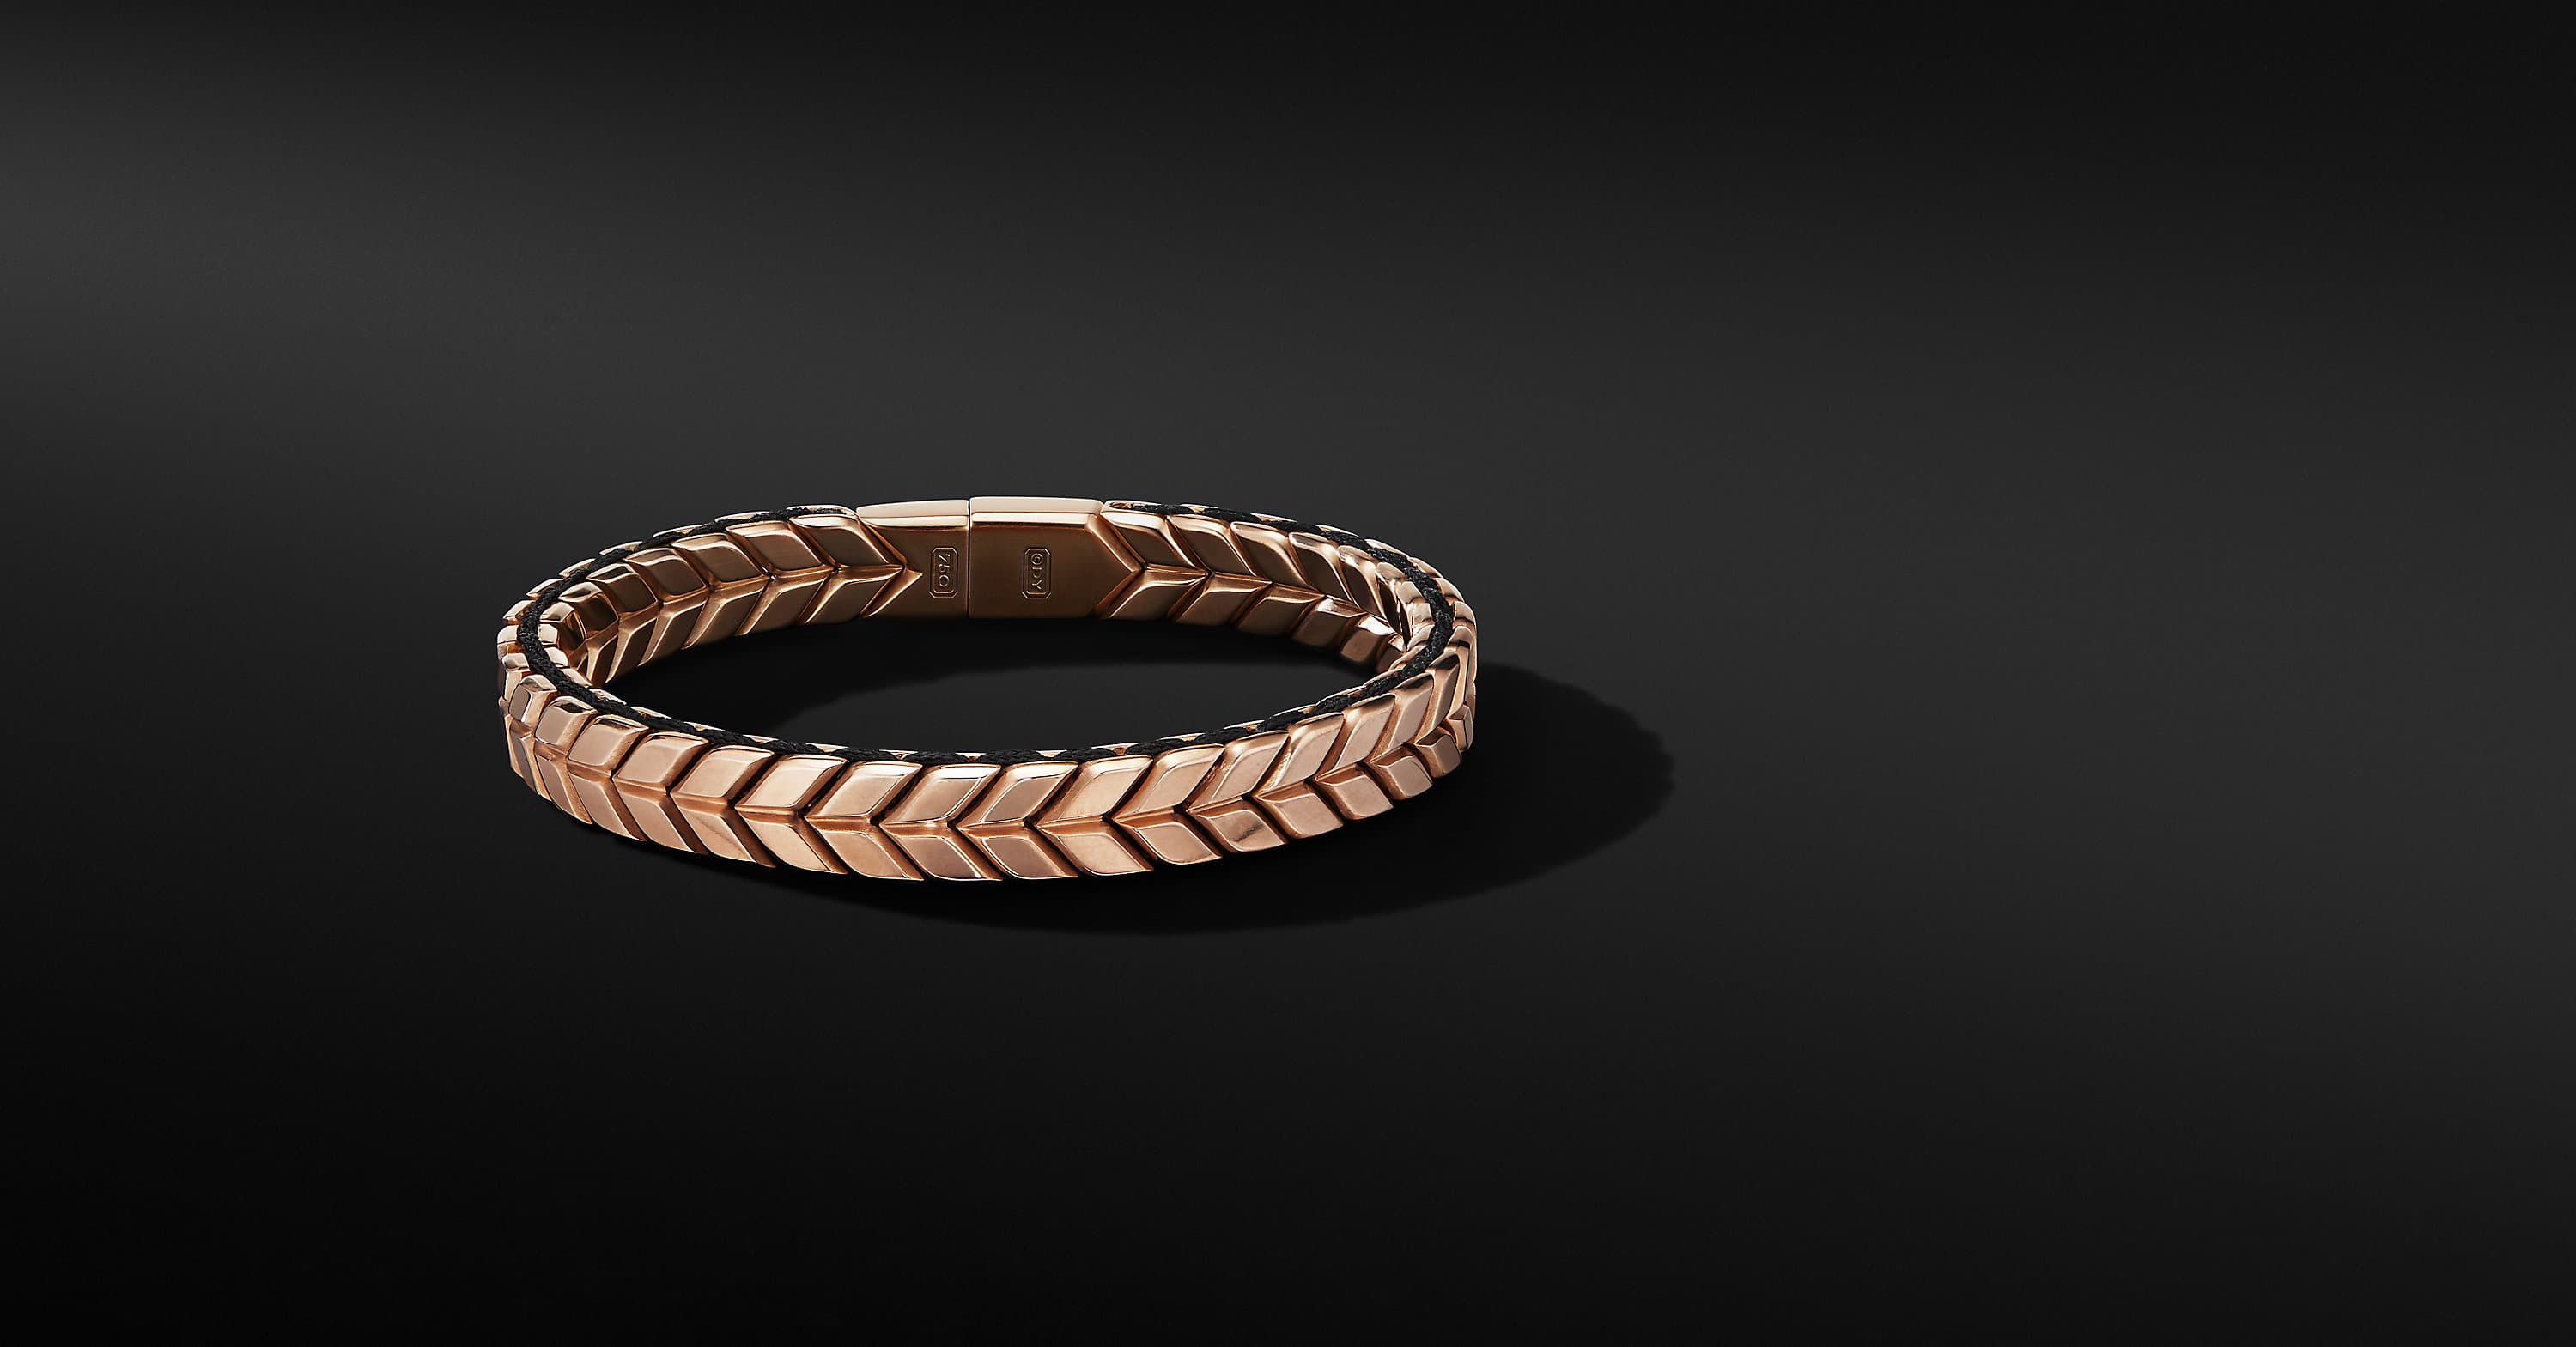 Chevron Narrow Woven Bracelet in 18K Rose Gold